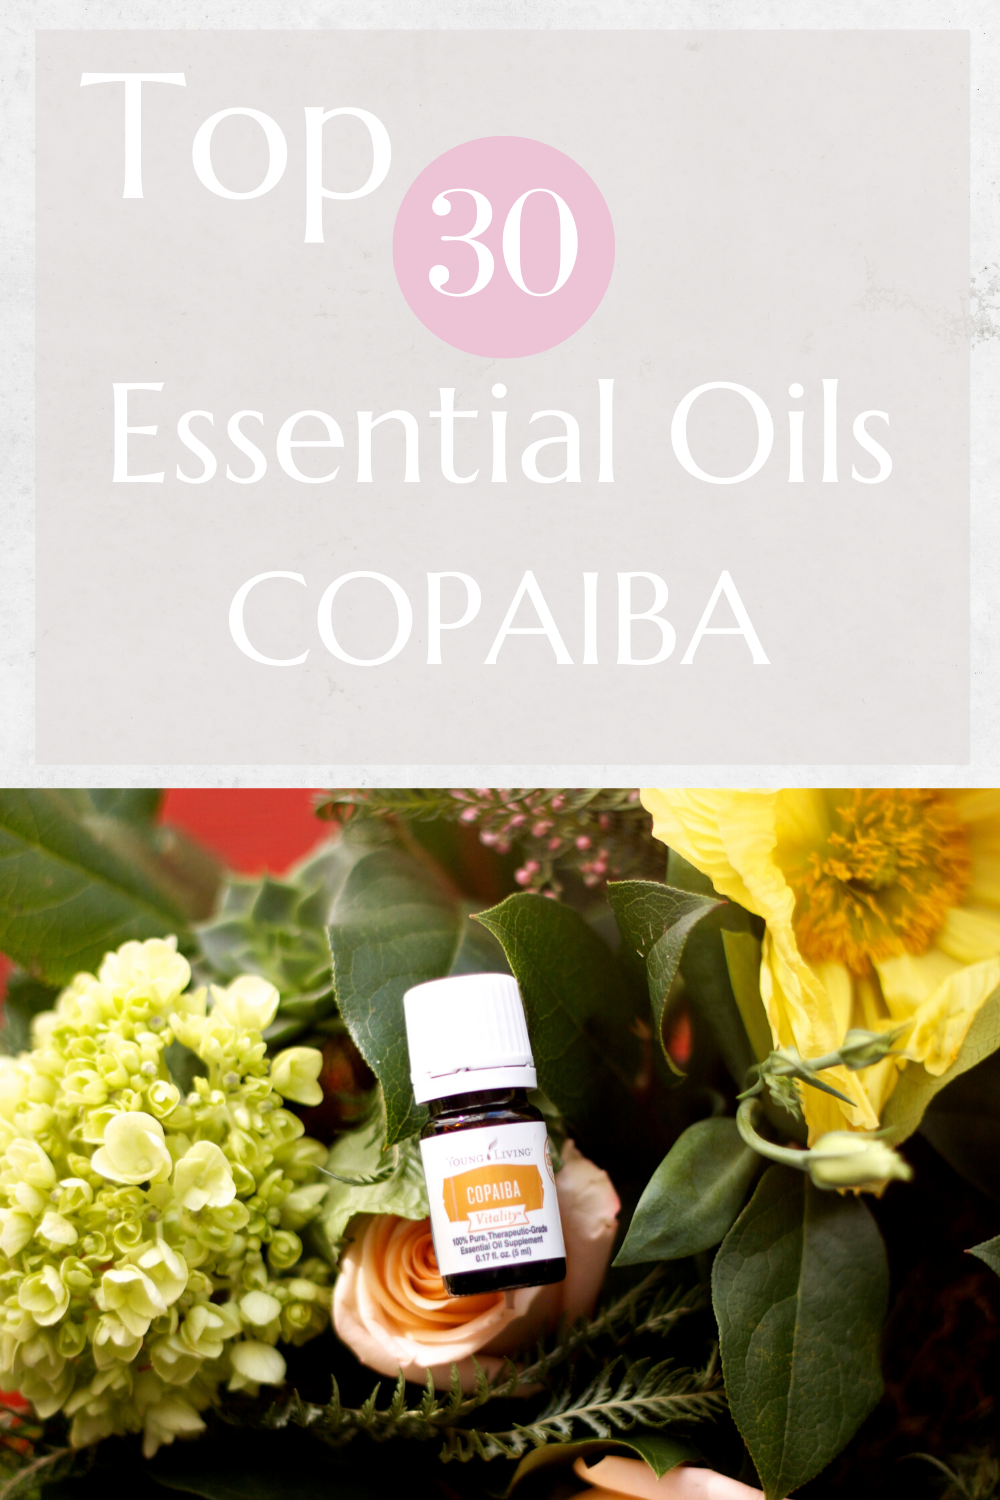 Top 30 Essential Oils Copaiba